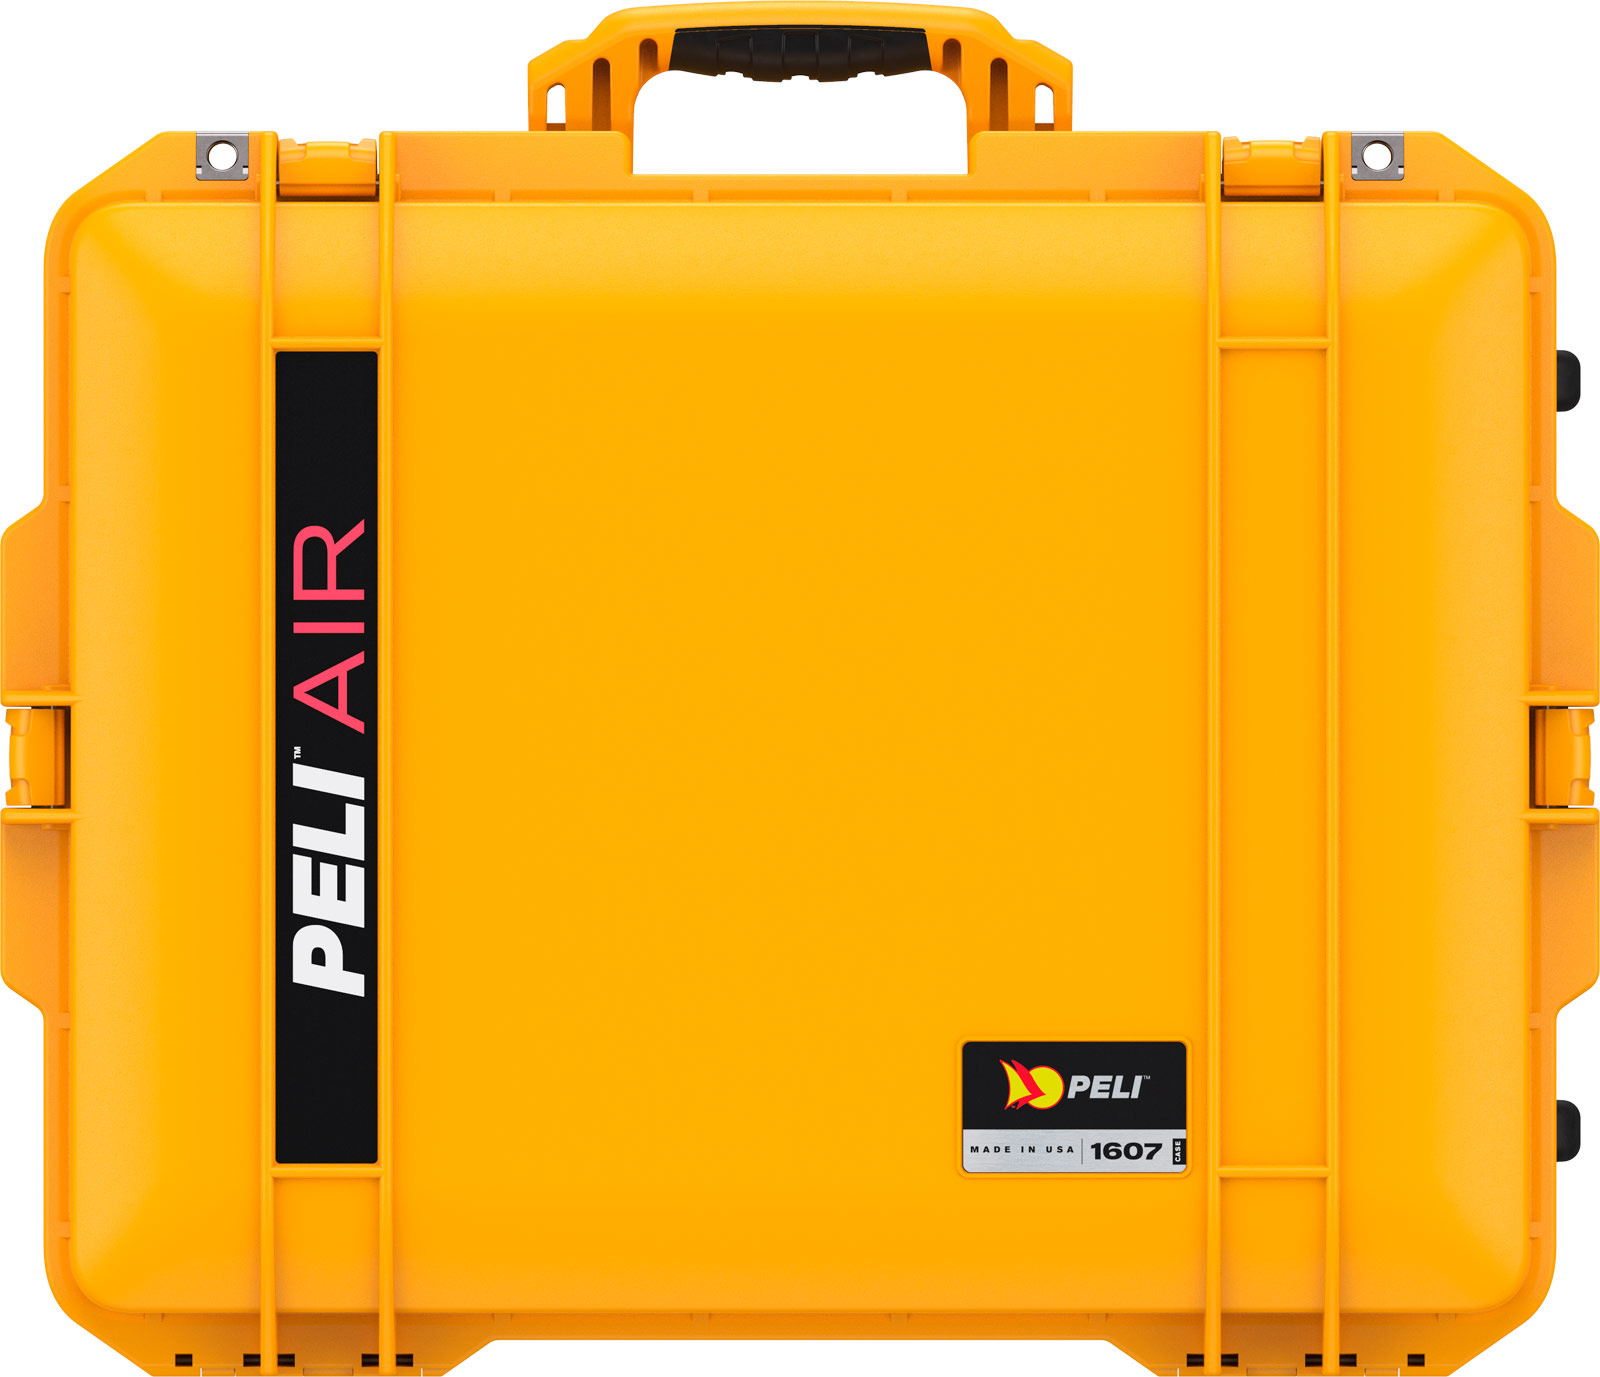 peli yellow 1607 air crushproof case